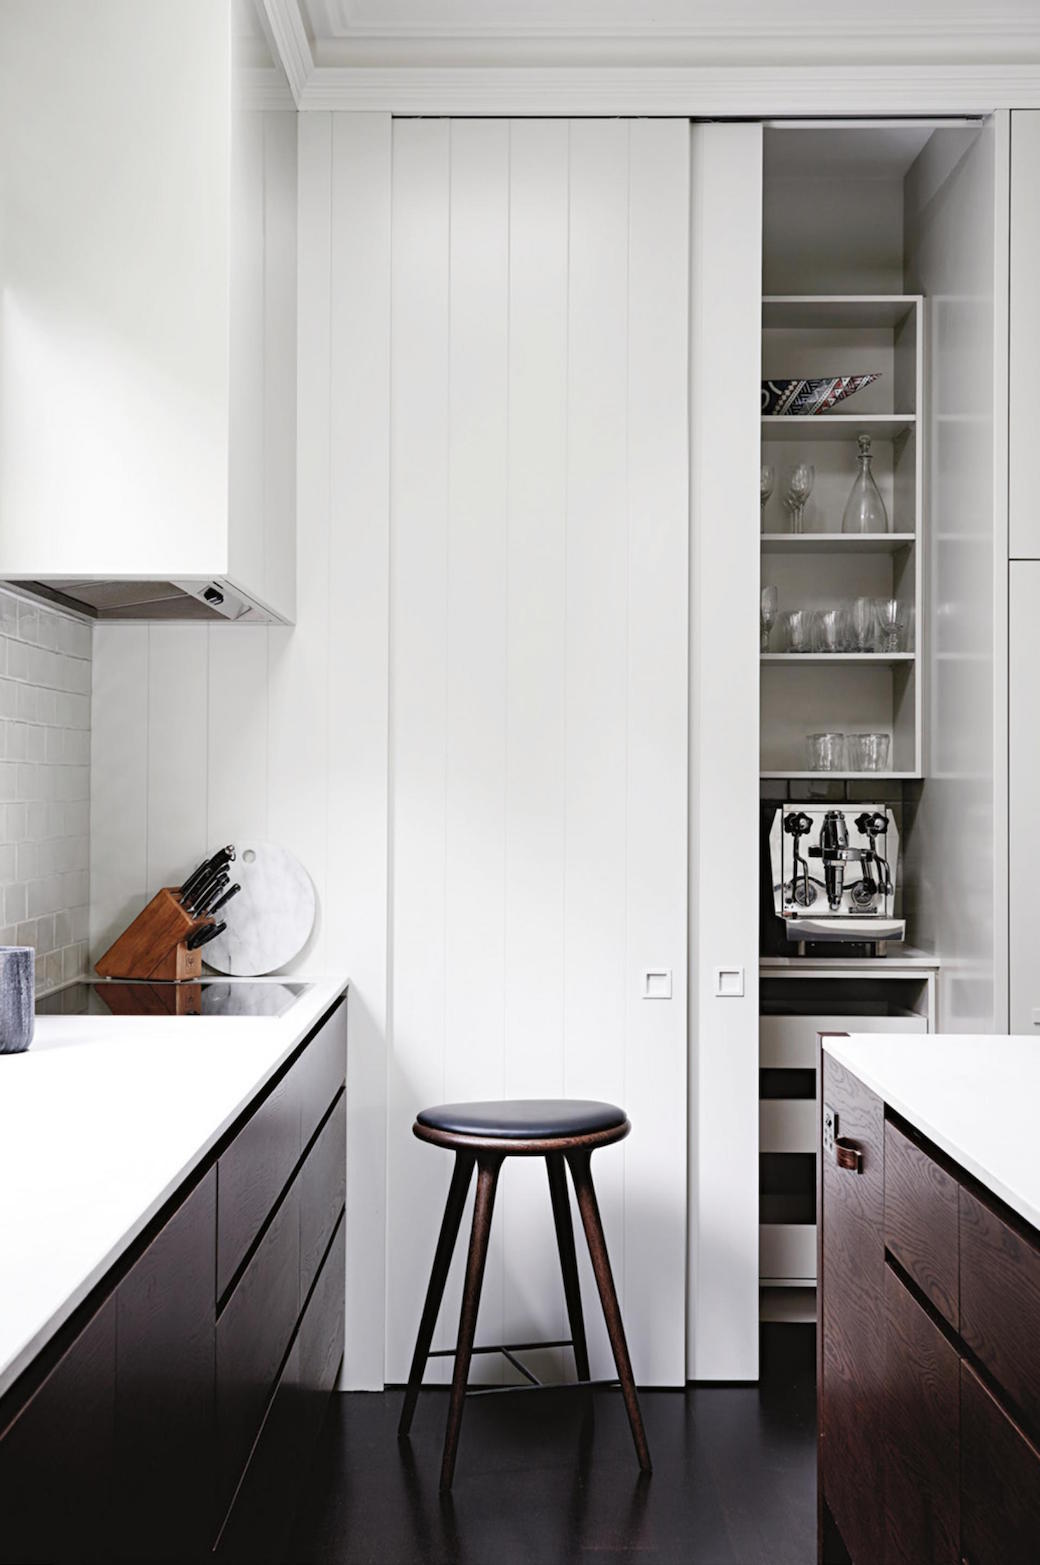 Melbourne renovation by Chelsea Hing, photo by Eve Wilson.